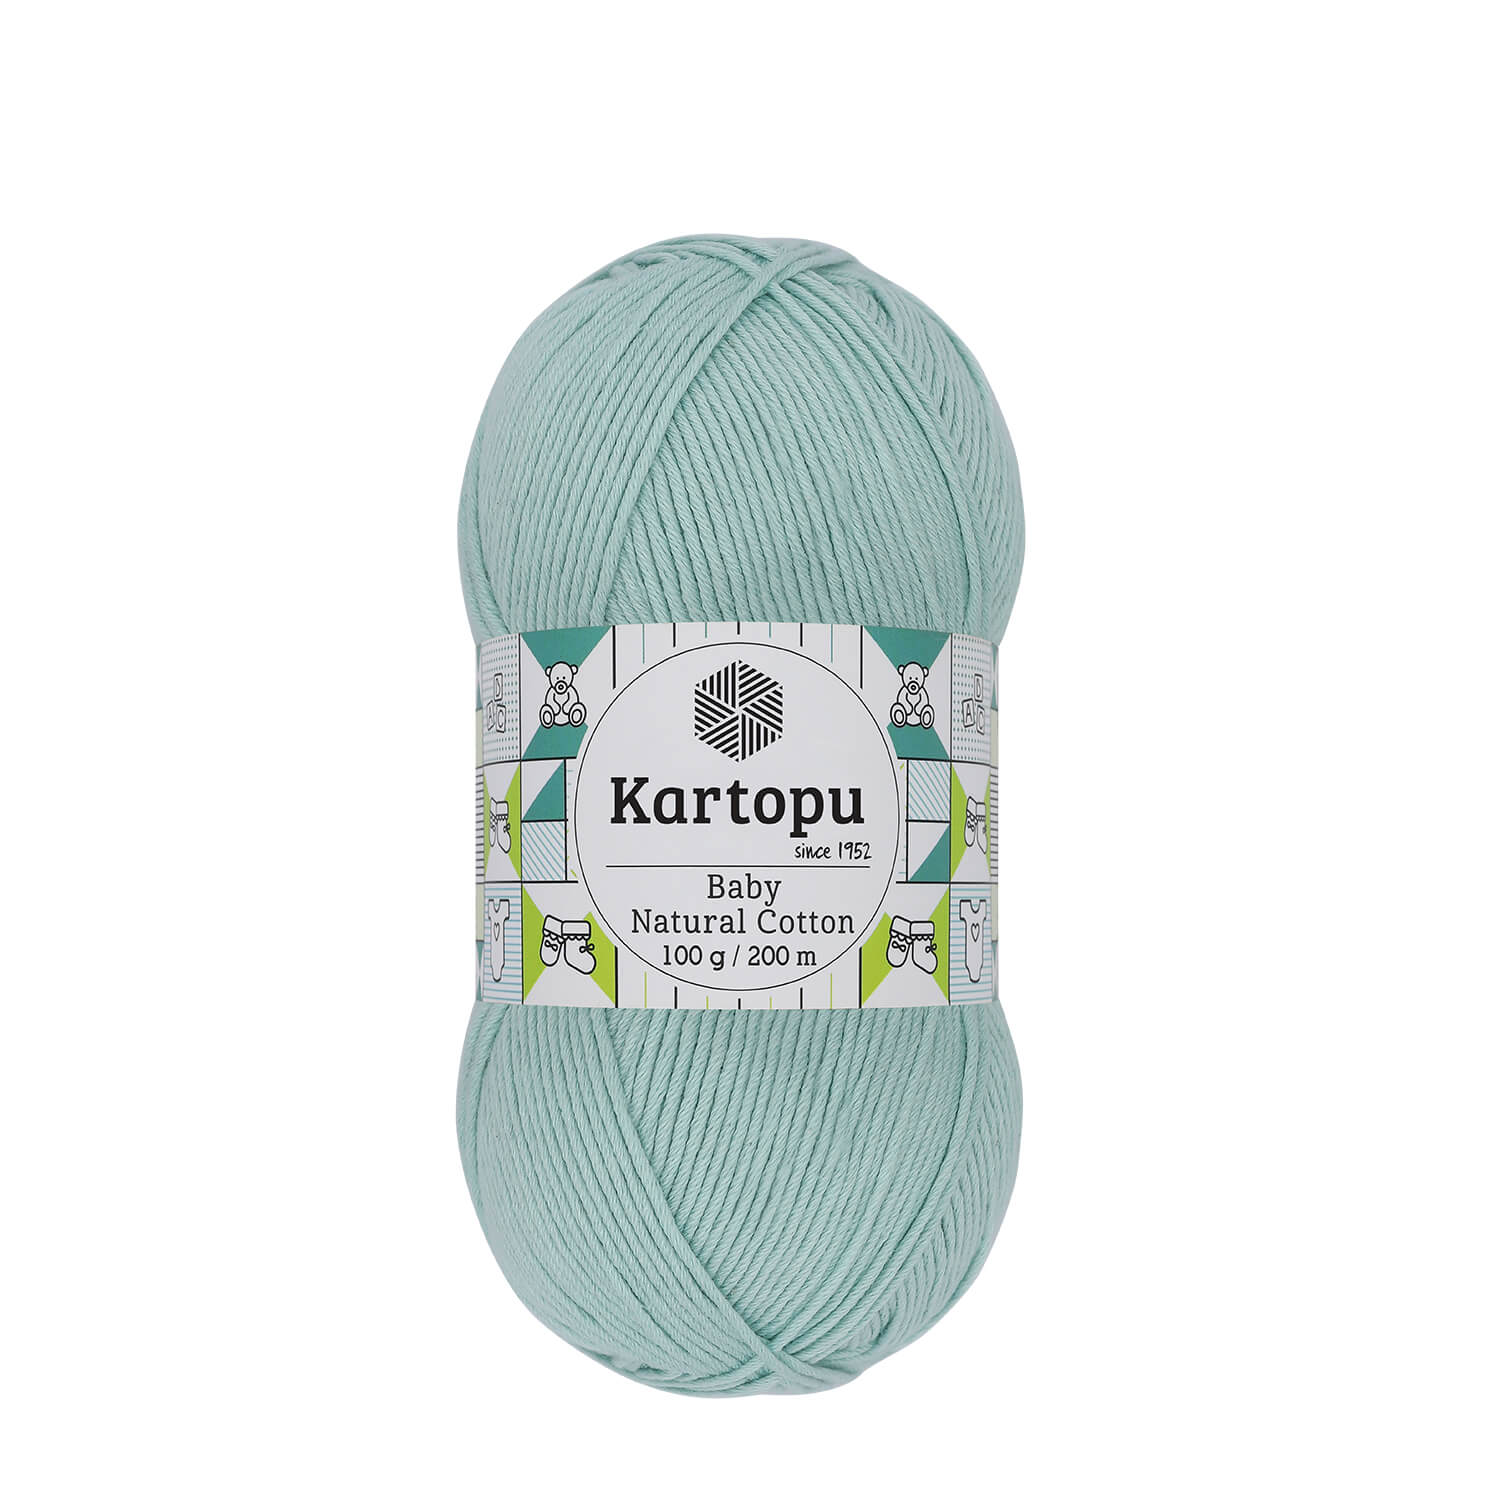 Baby Natural Cotton K547